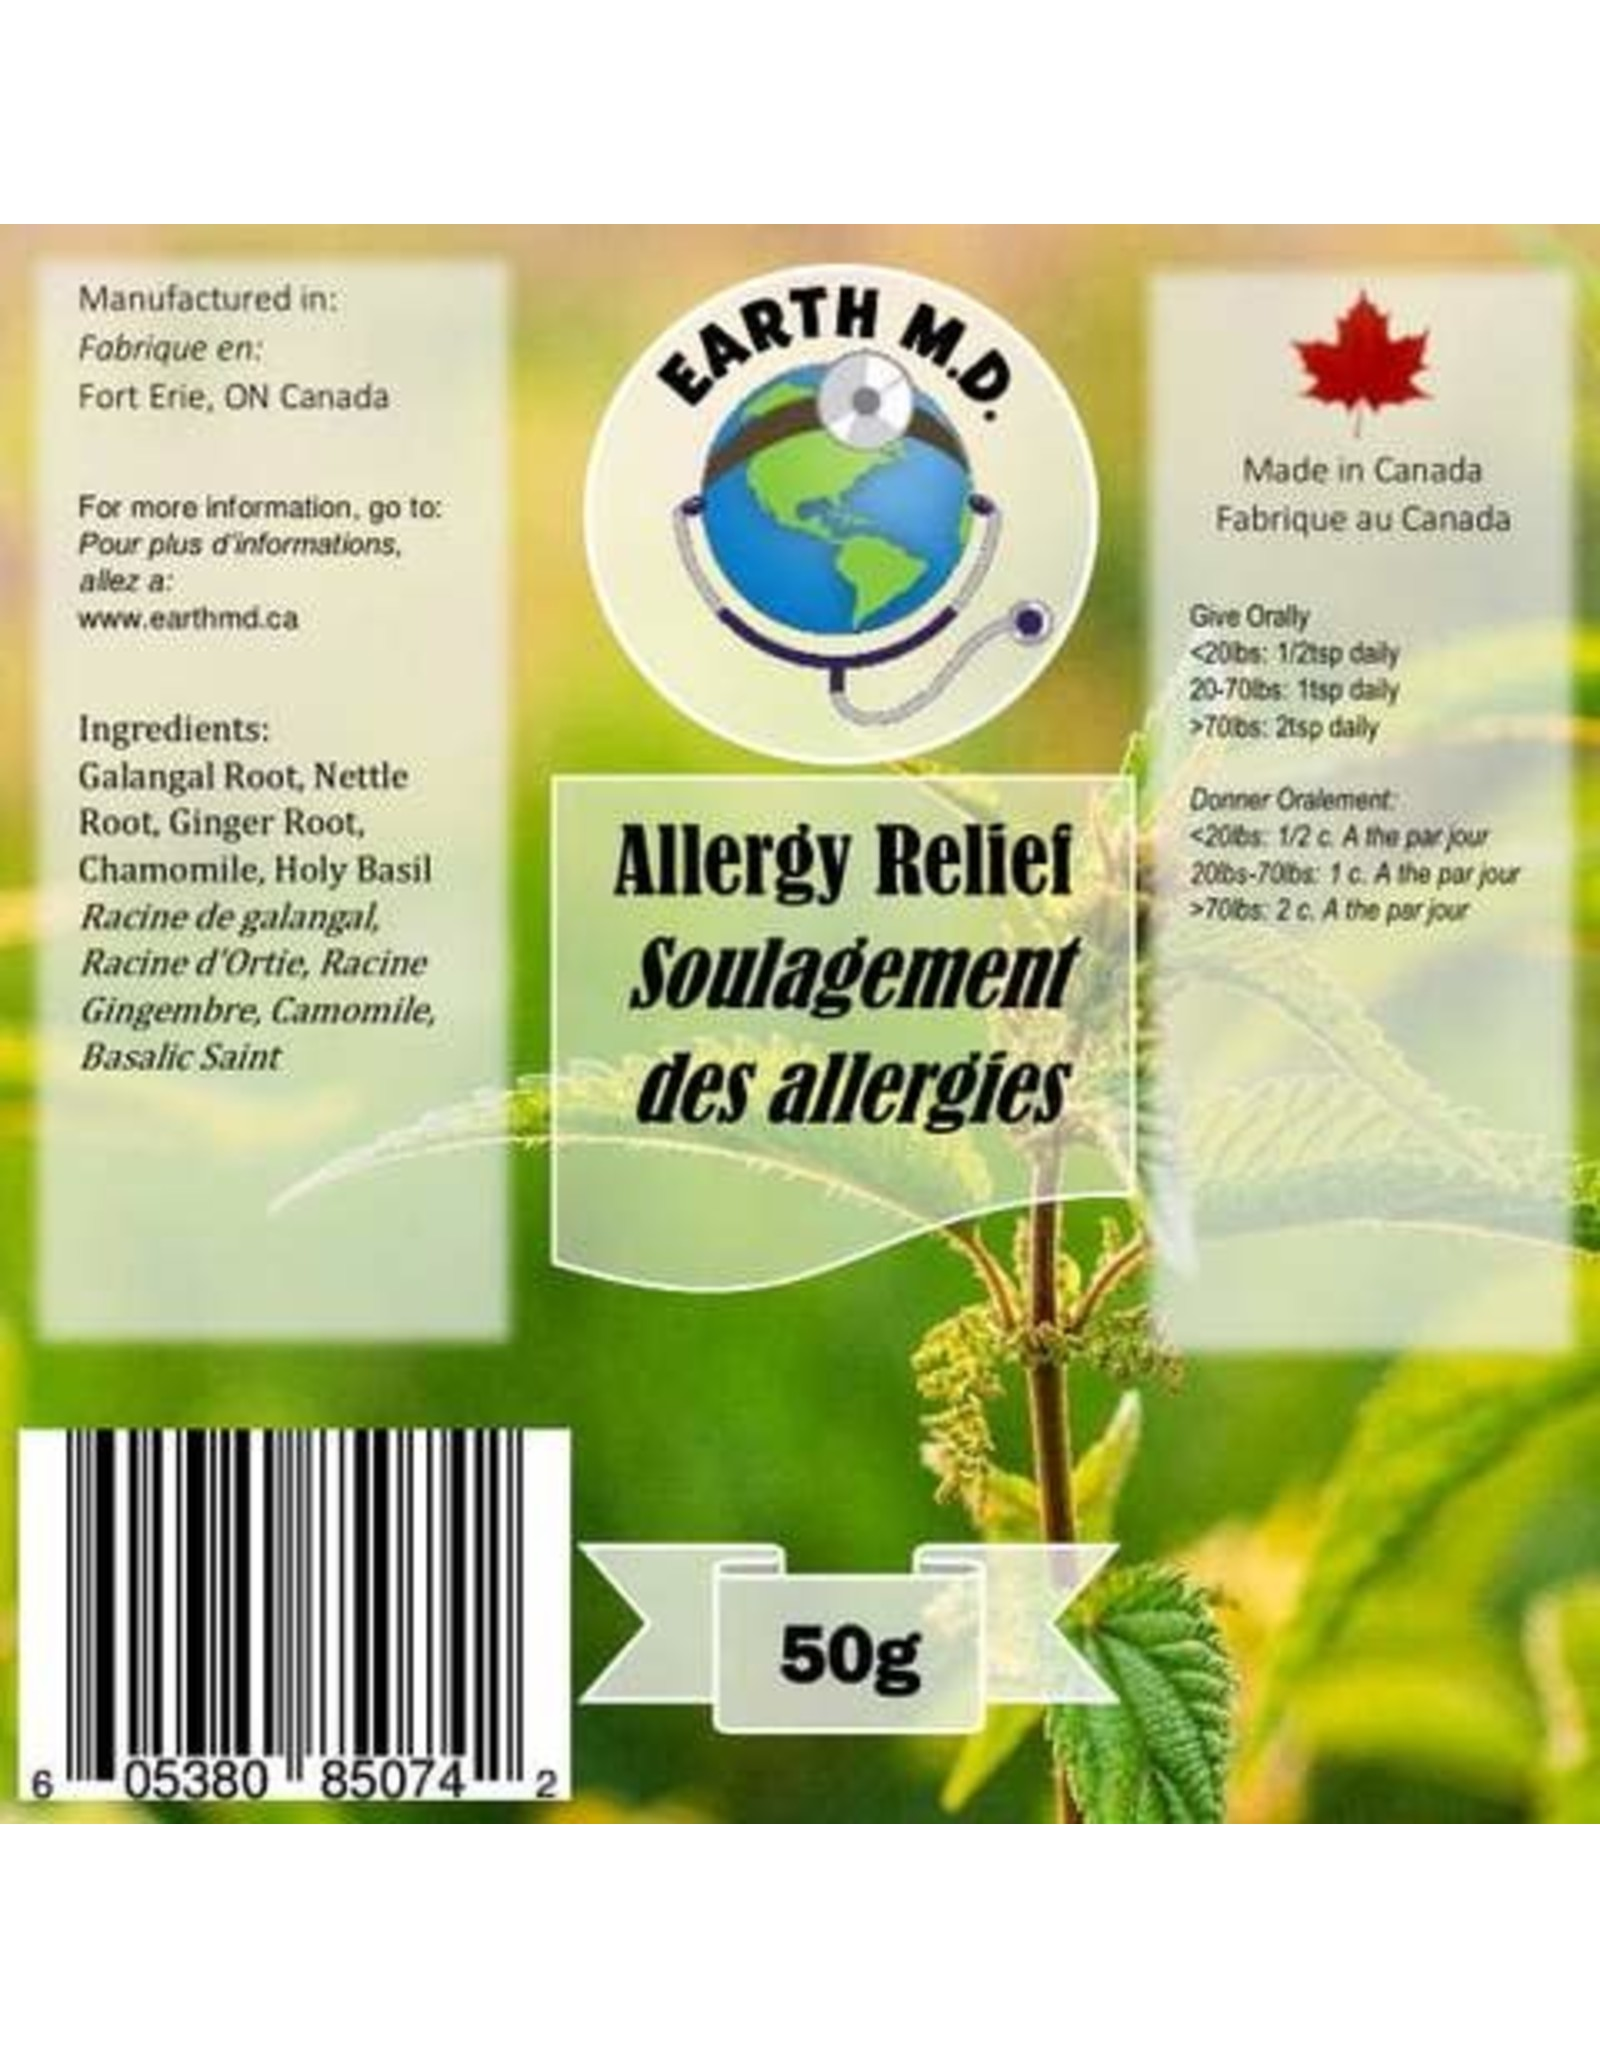 Earth MD Earth MD - Allergy Relief (50g)